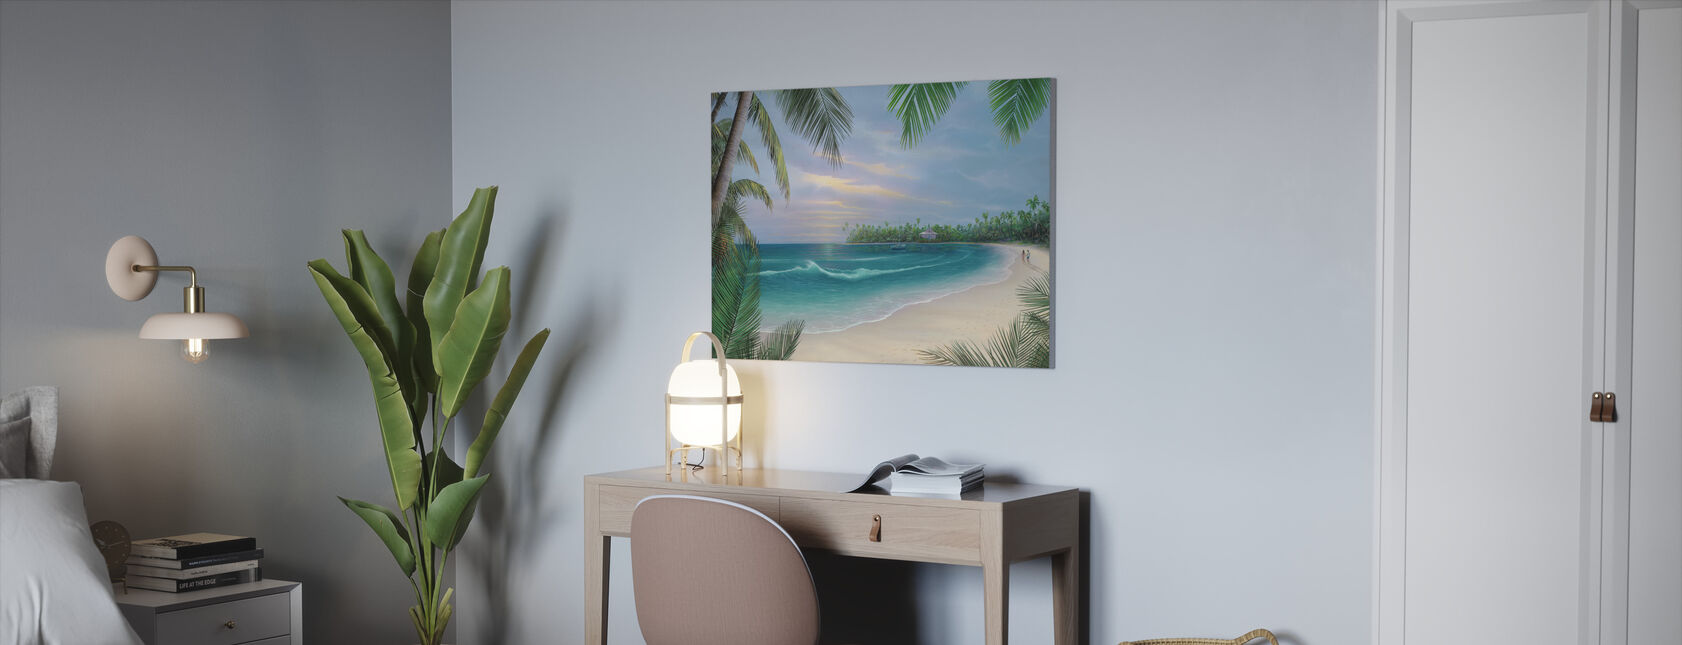 Beach House Rendezvous - Canvas print - Office